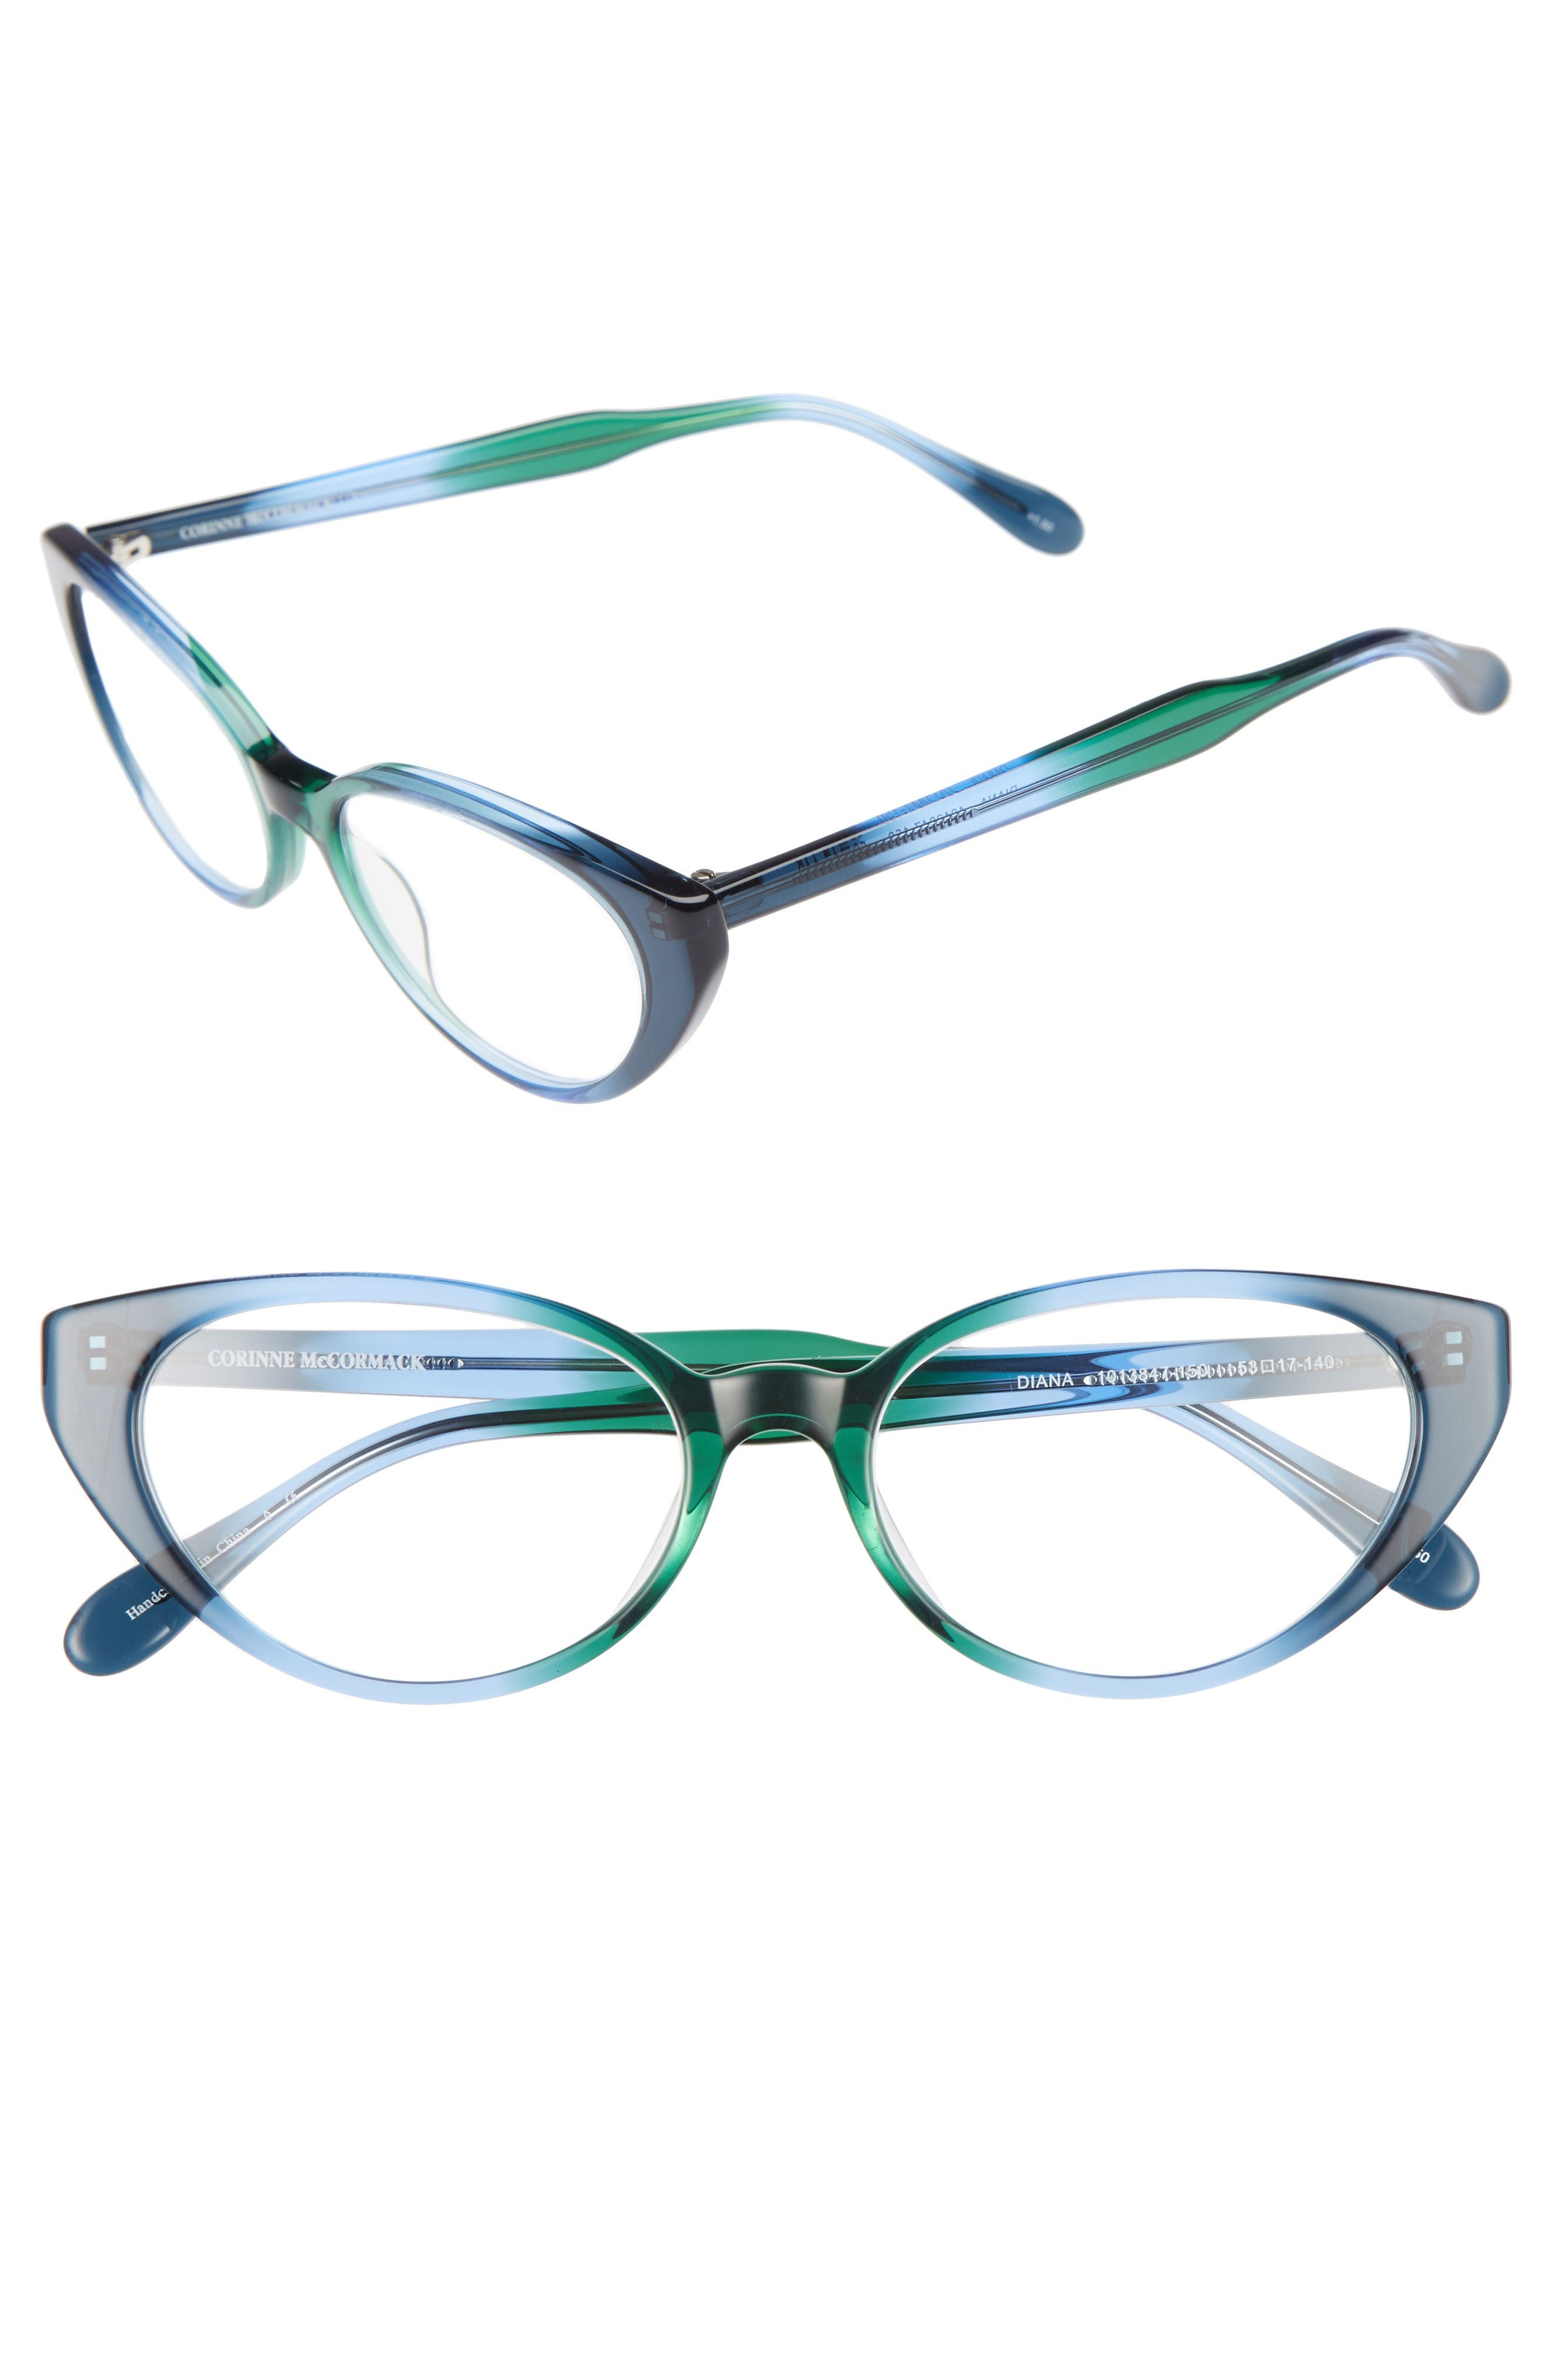 Corinne McCormack Diana 53mm Cat Eye Reading Glasses